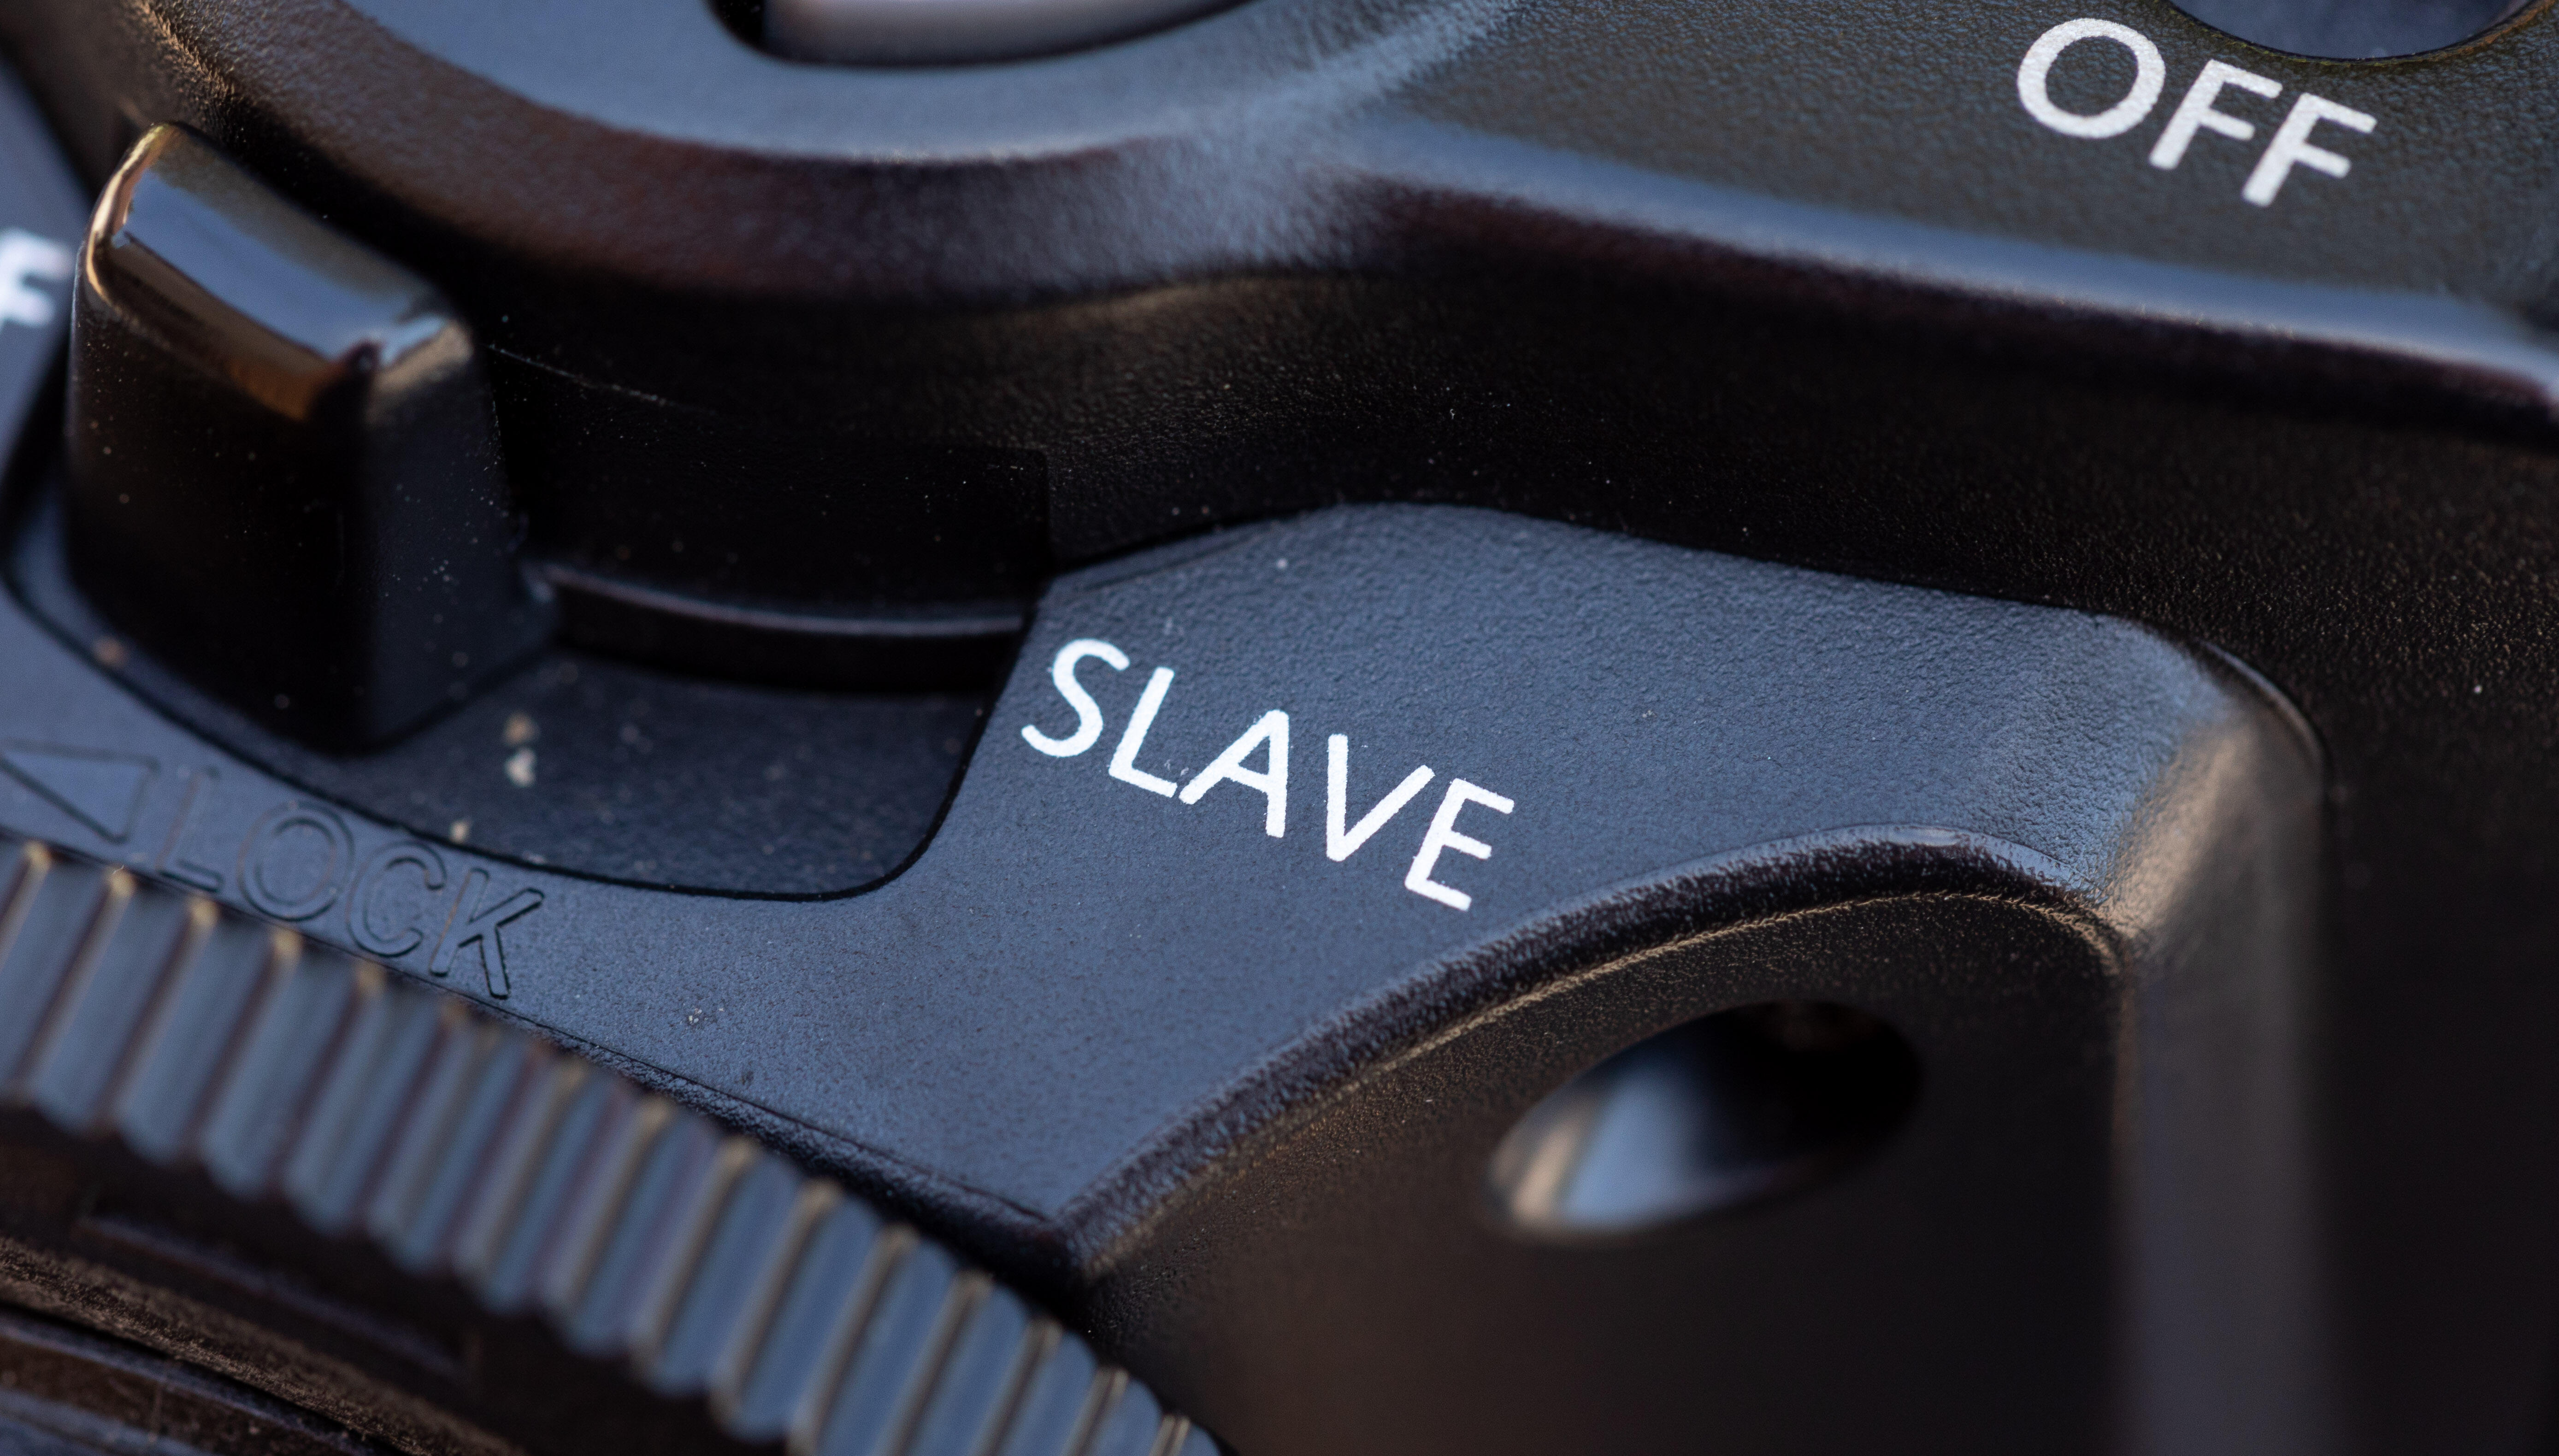 A camera flash shows a switch to change between master and slave modes.